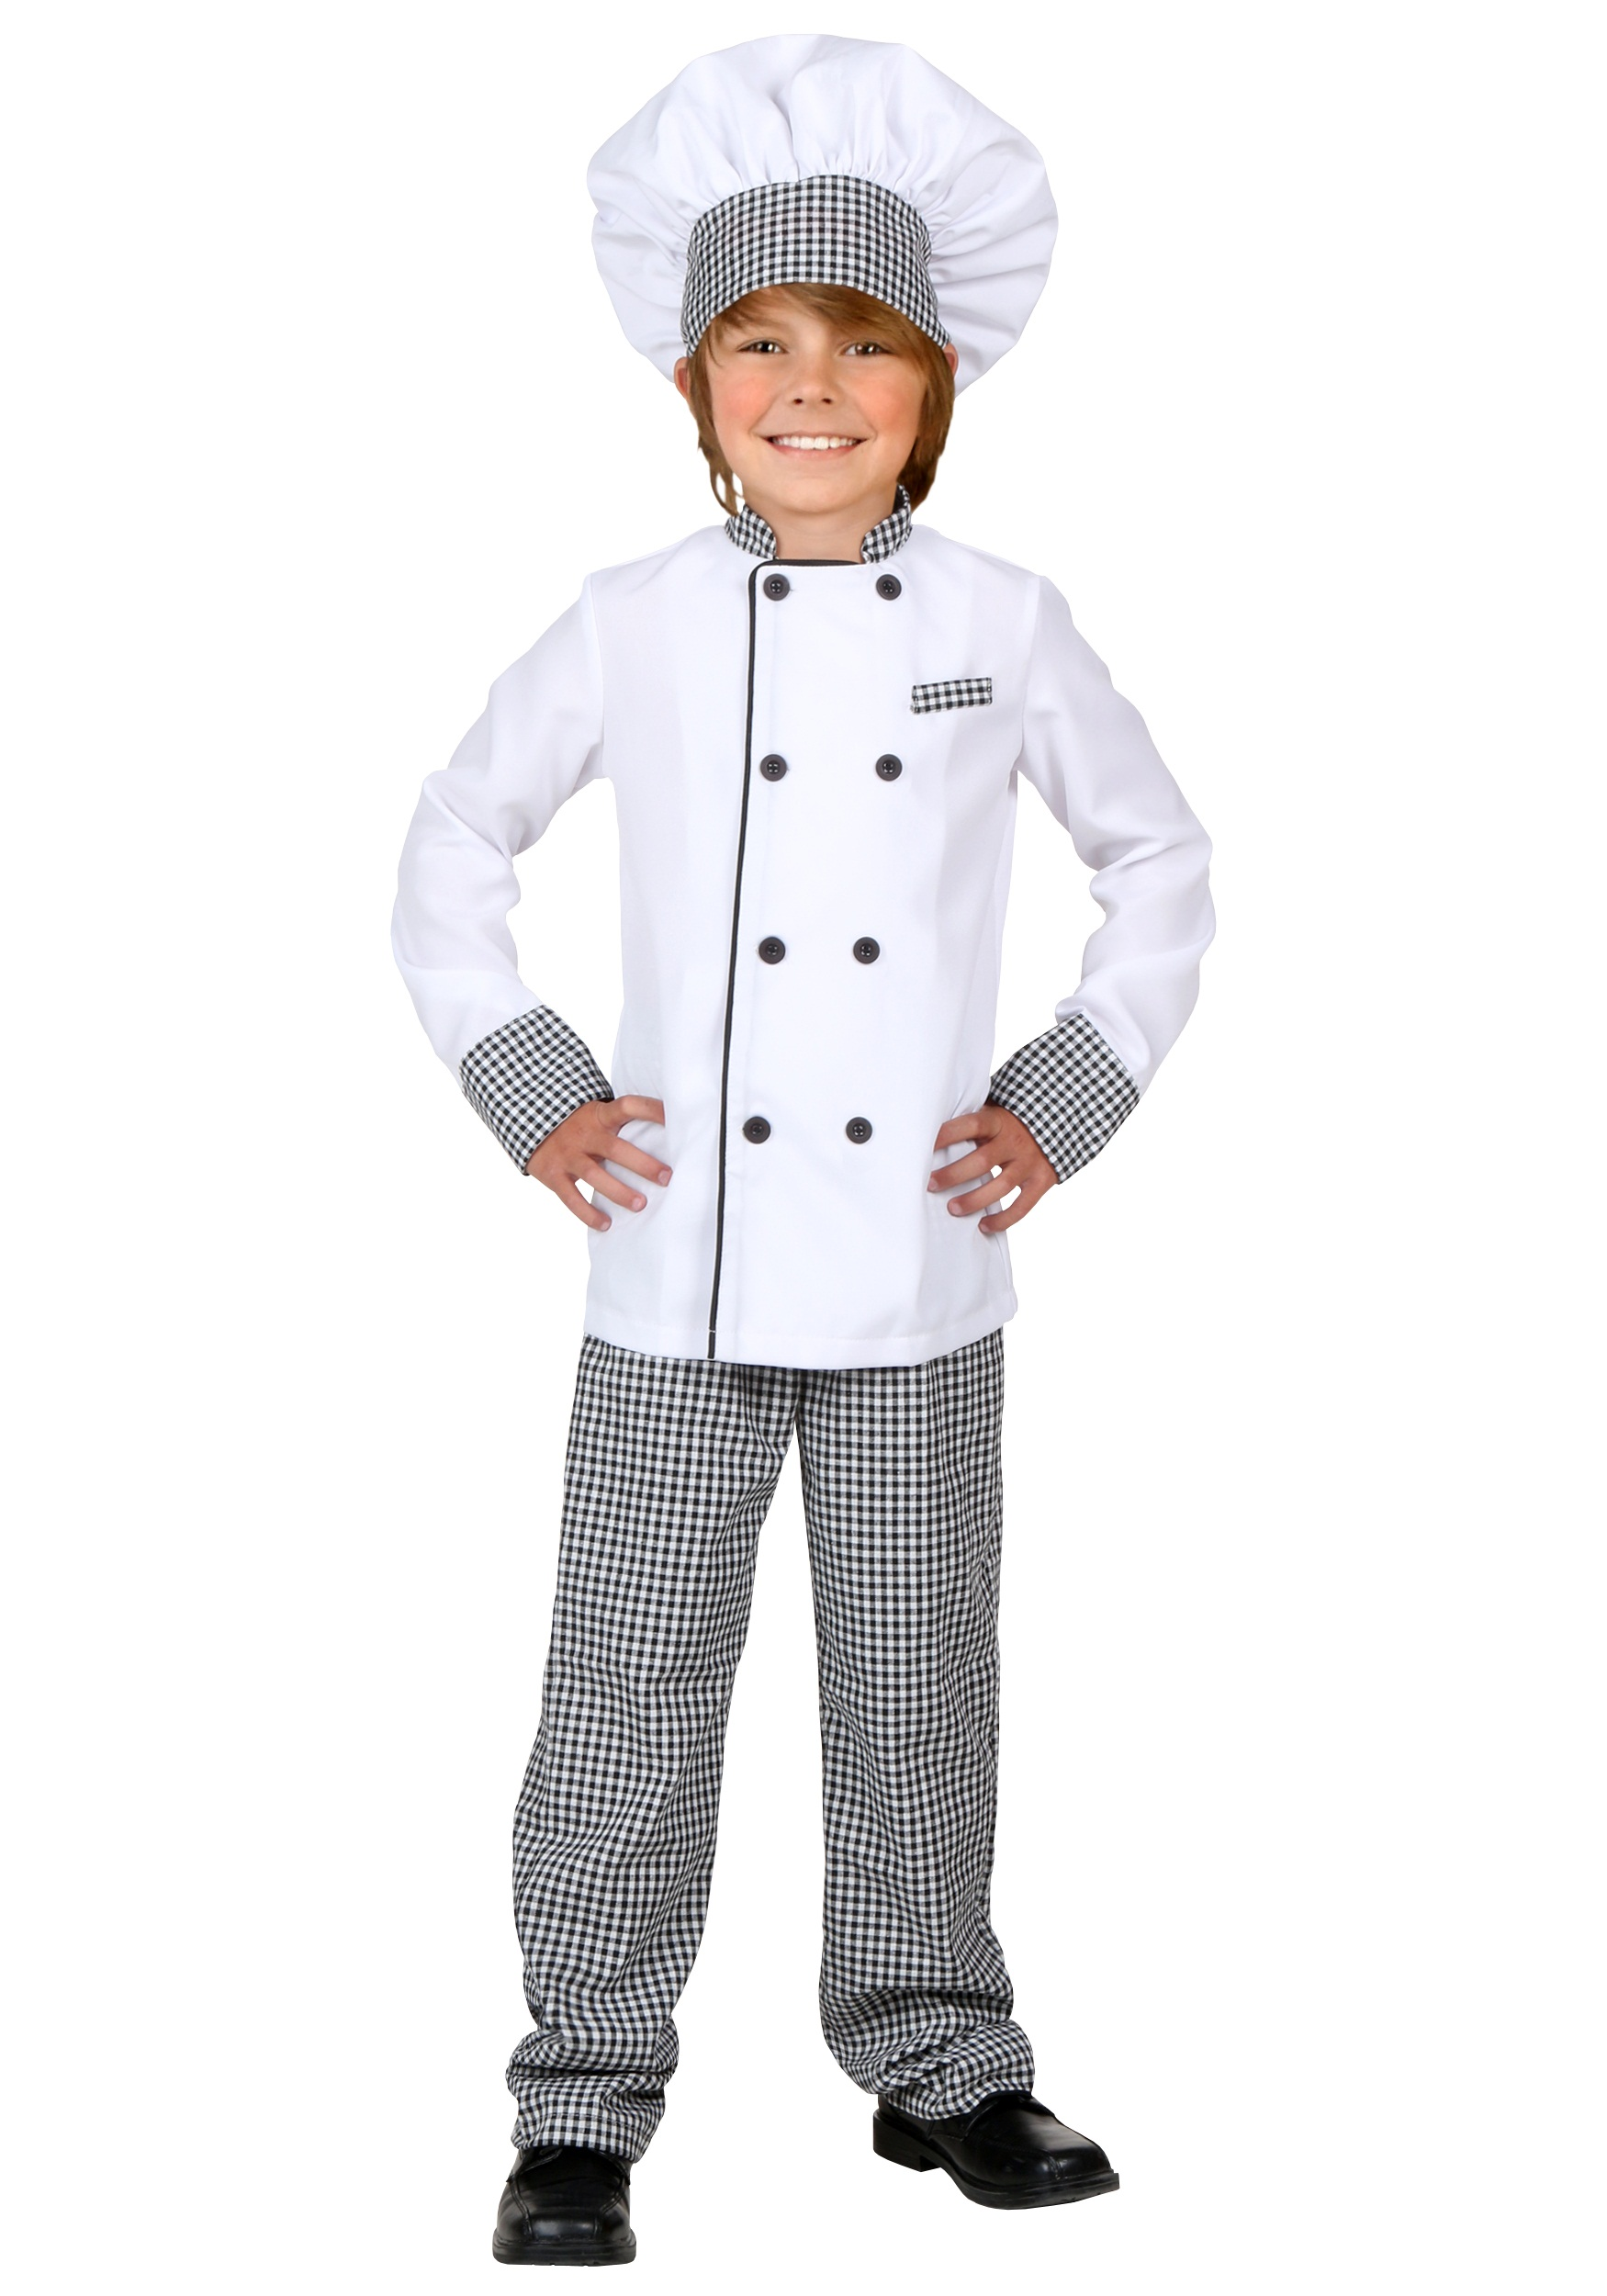 sc 1 st  Halloween Costumes : chef halloween costumes  - Germanpascual.Com